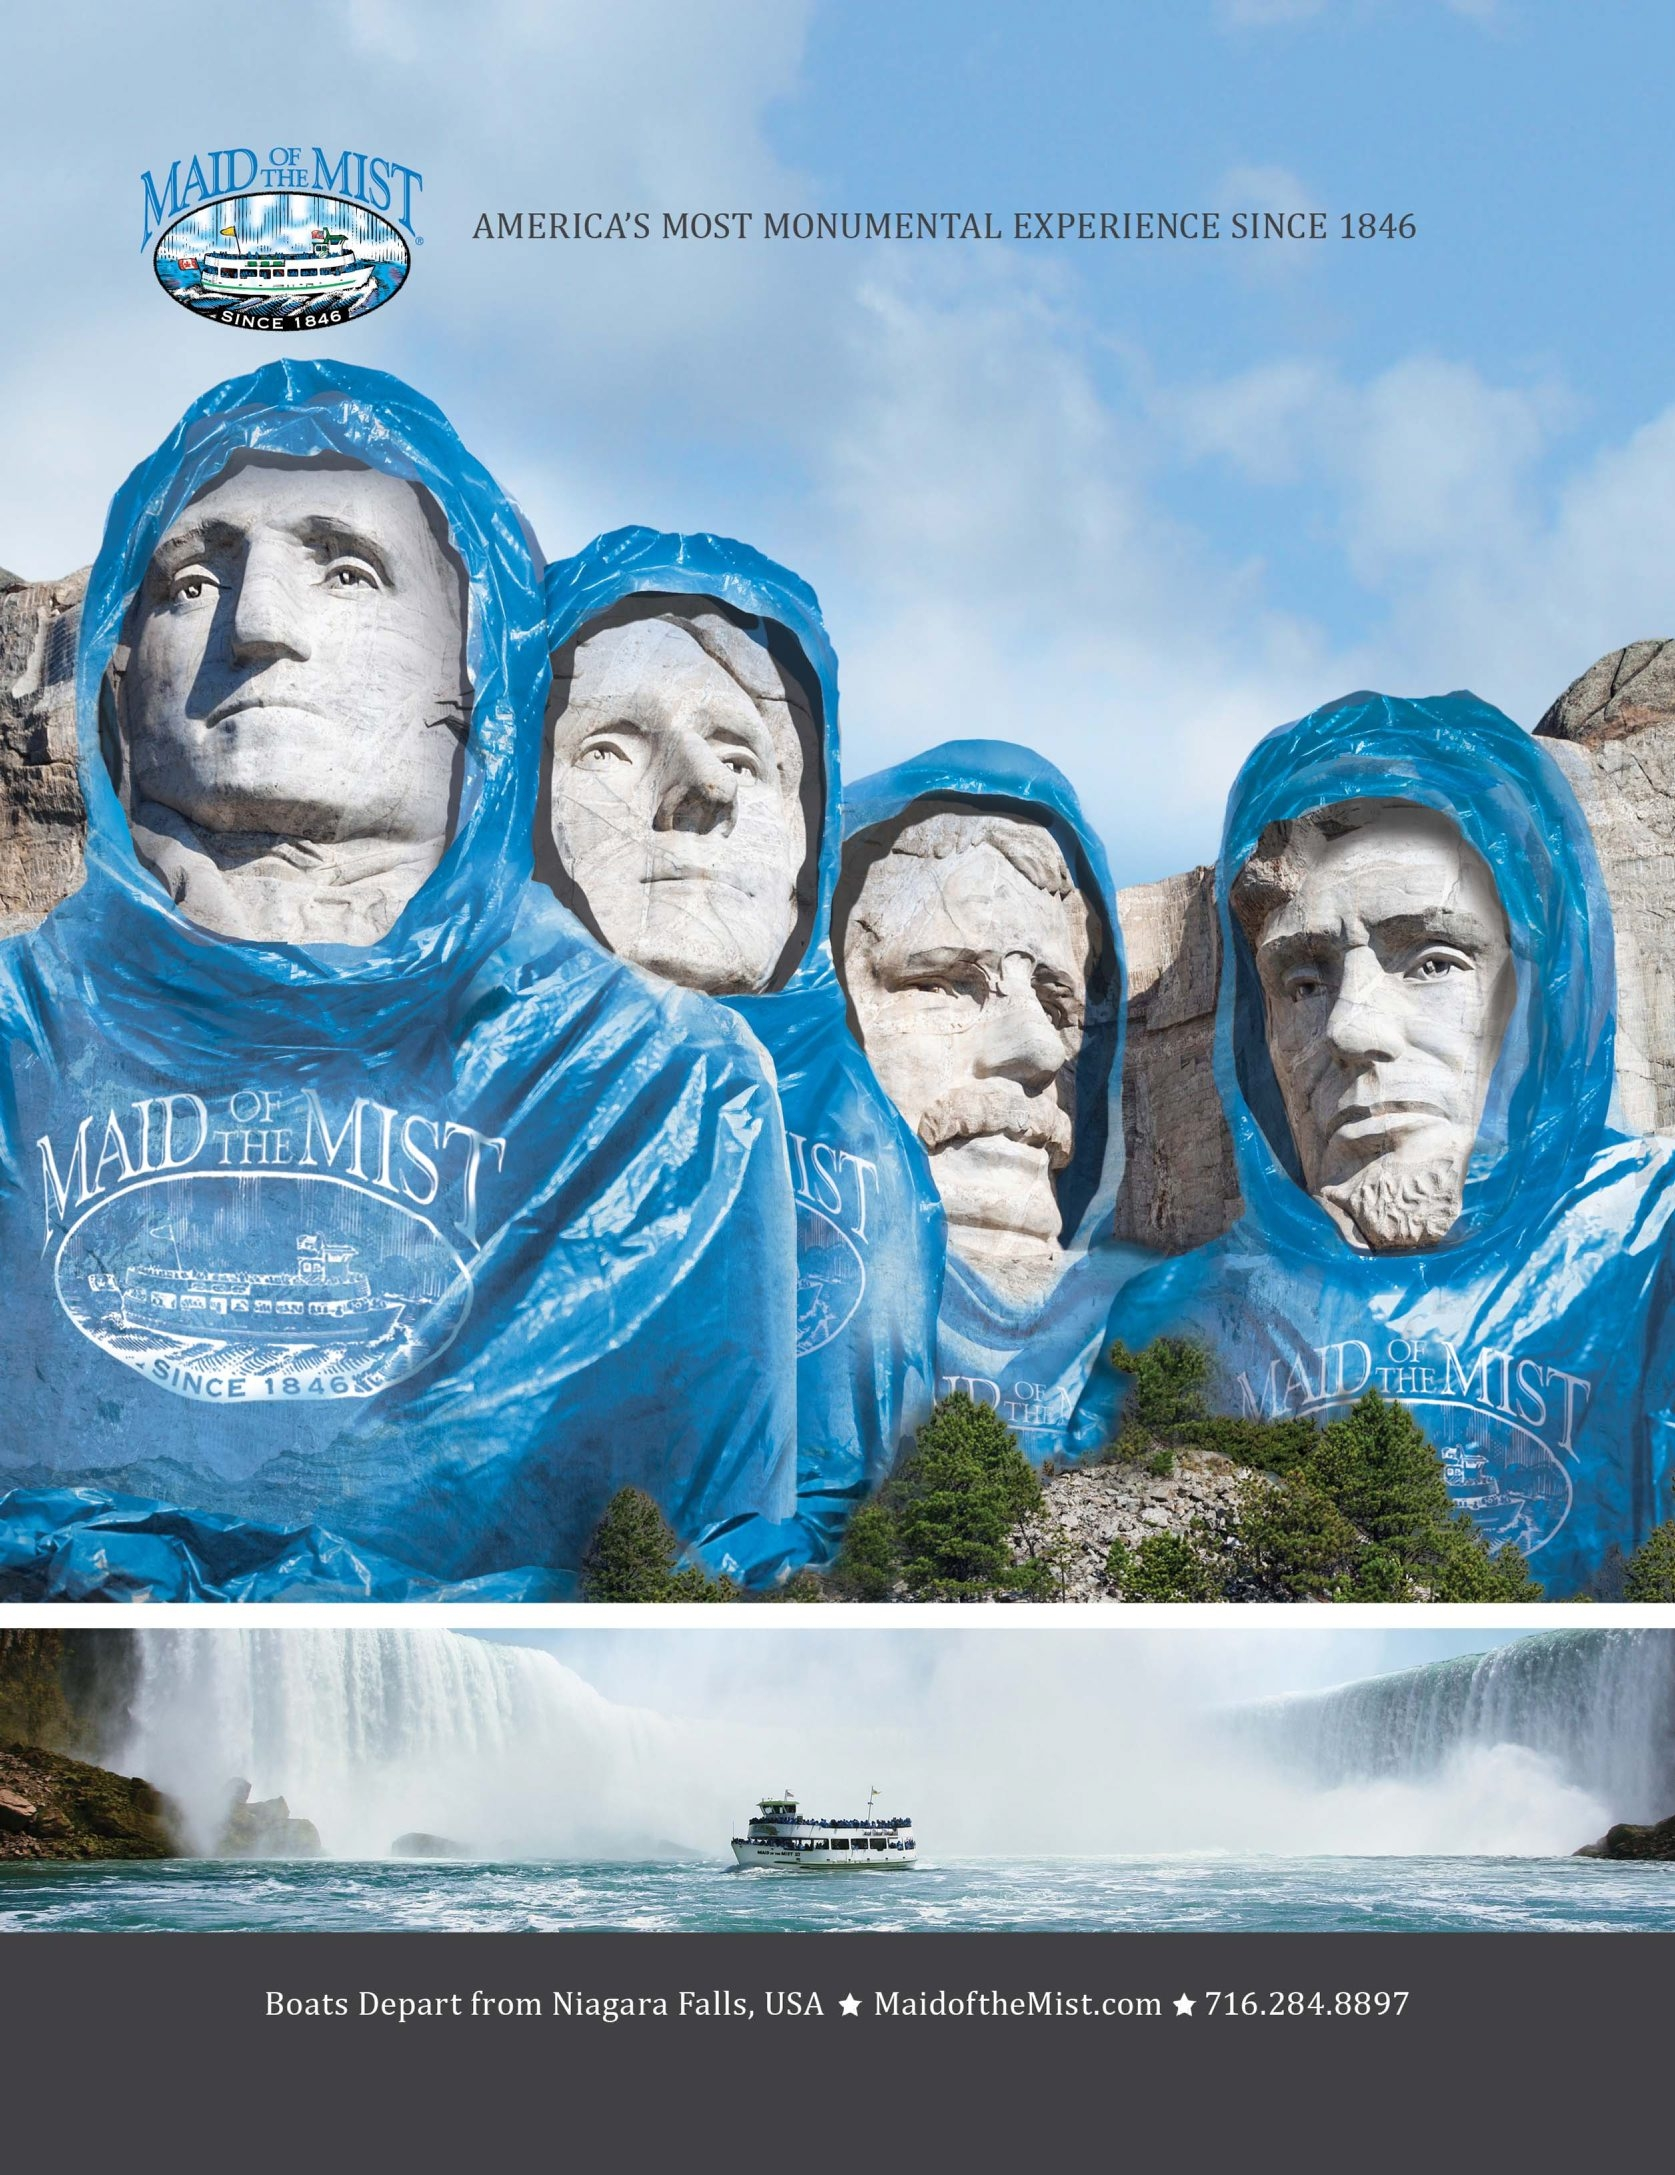 Mount Rushmore, the Statue of Liberty and the Lincoln Memorial in Washington, D.C., are being used in a marketing campaign for the Maid of the Mist Corp. by Eric Mower + Associates.